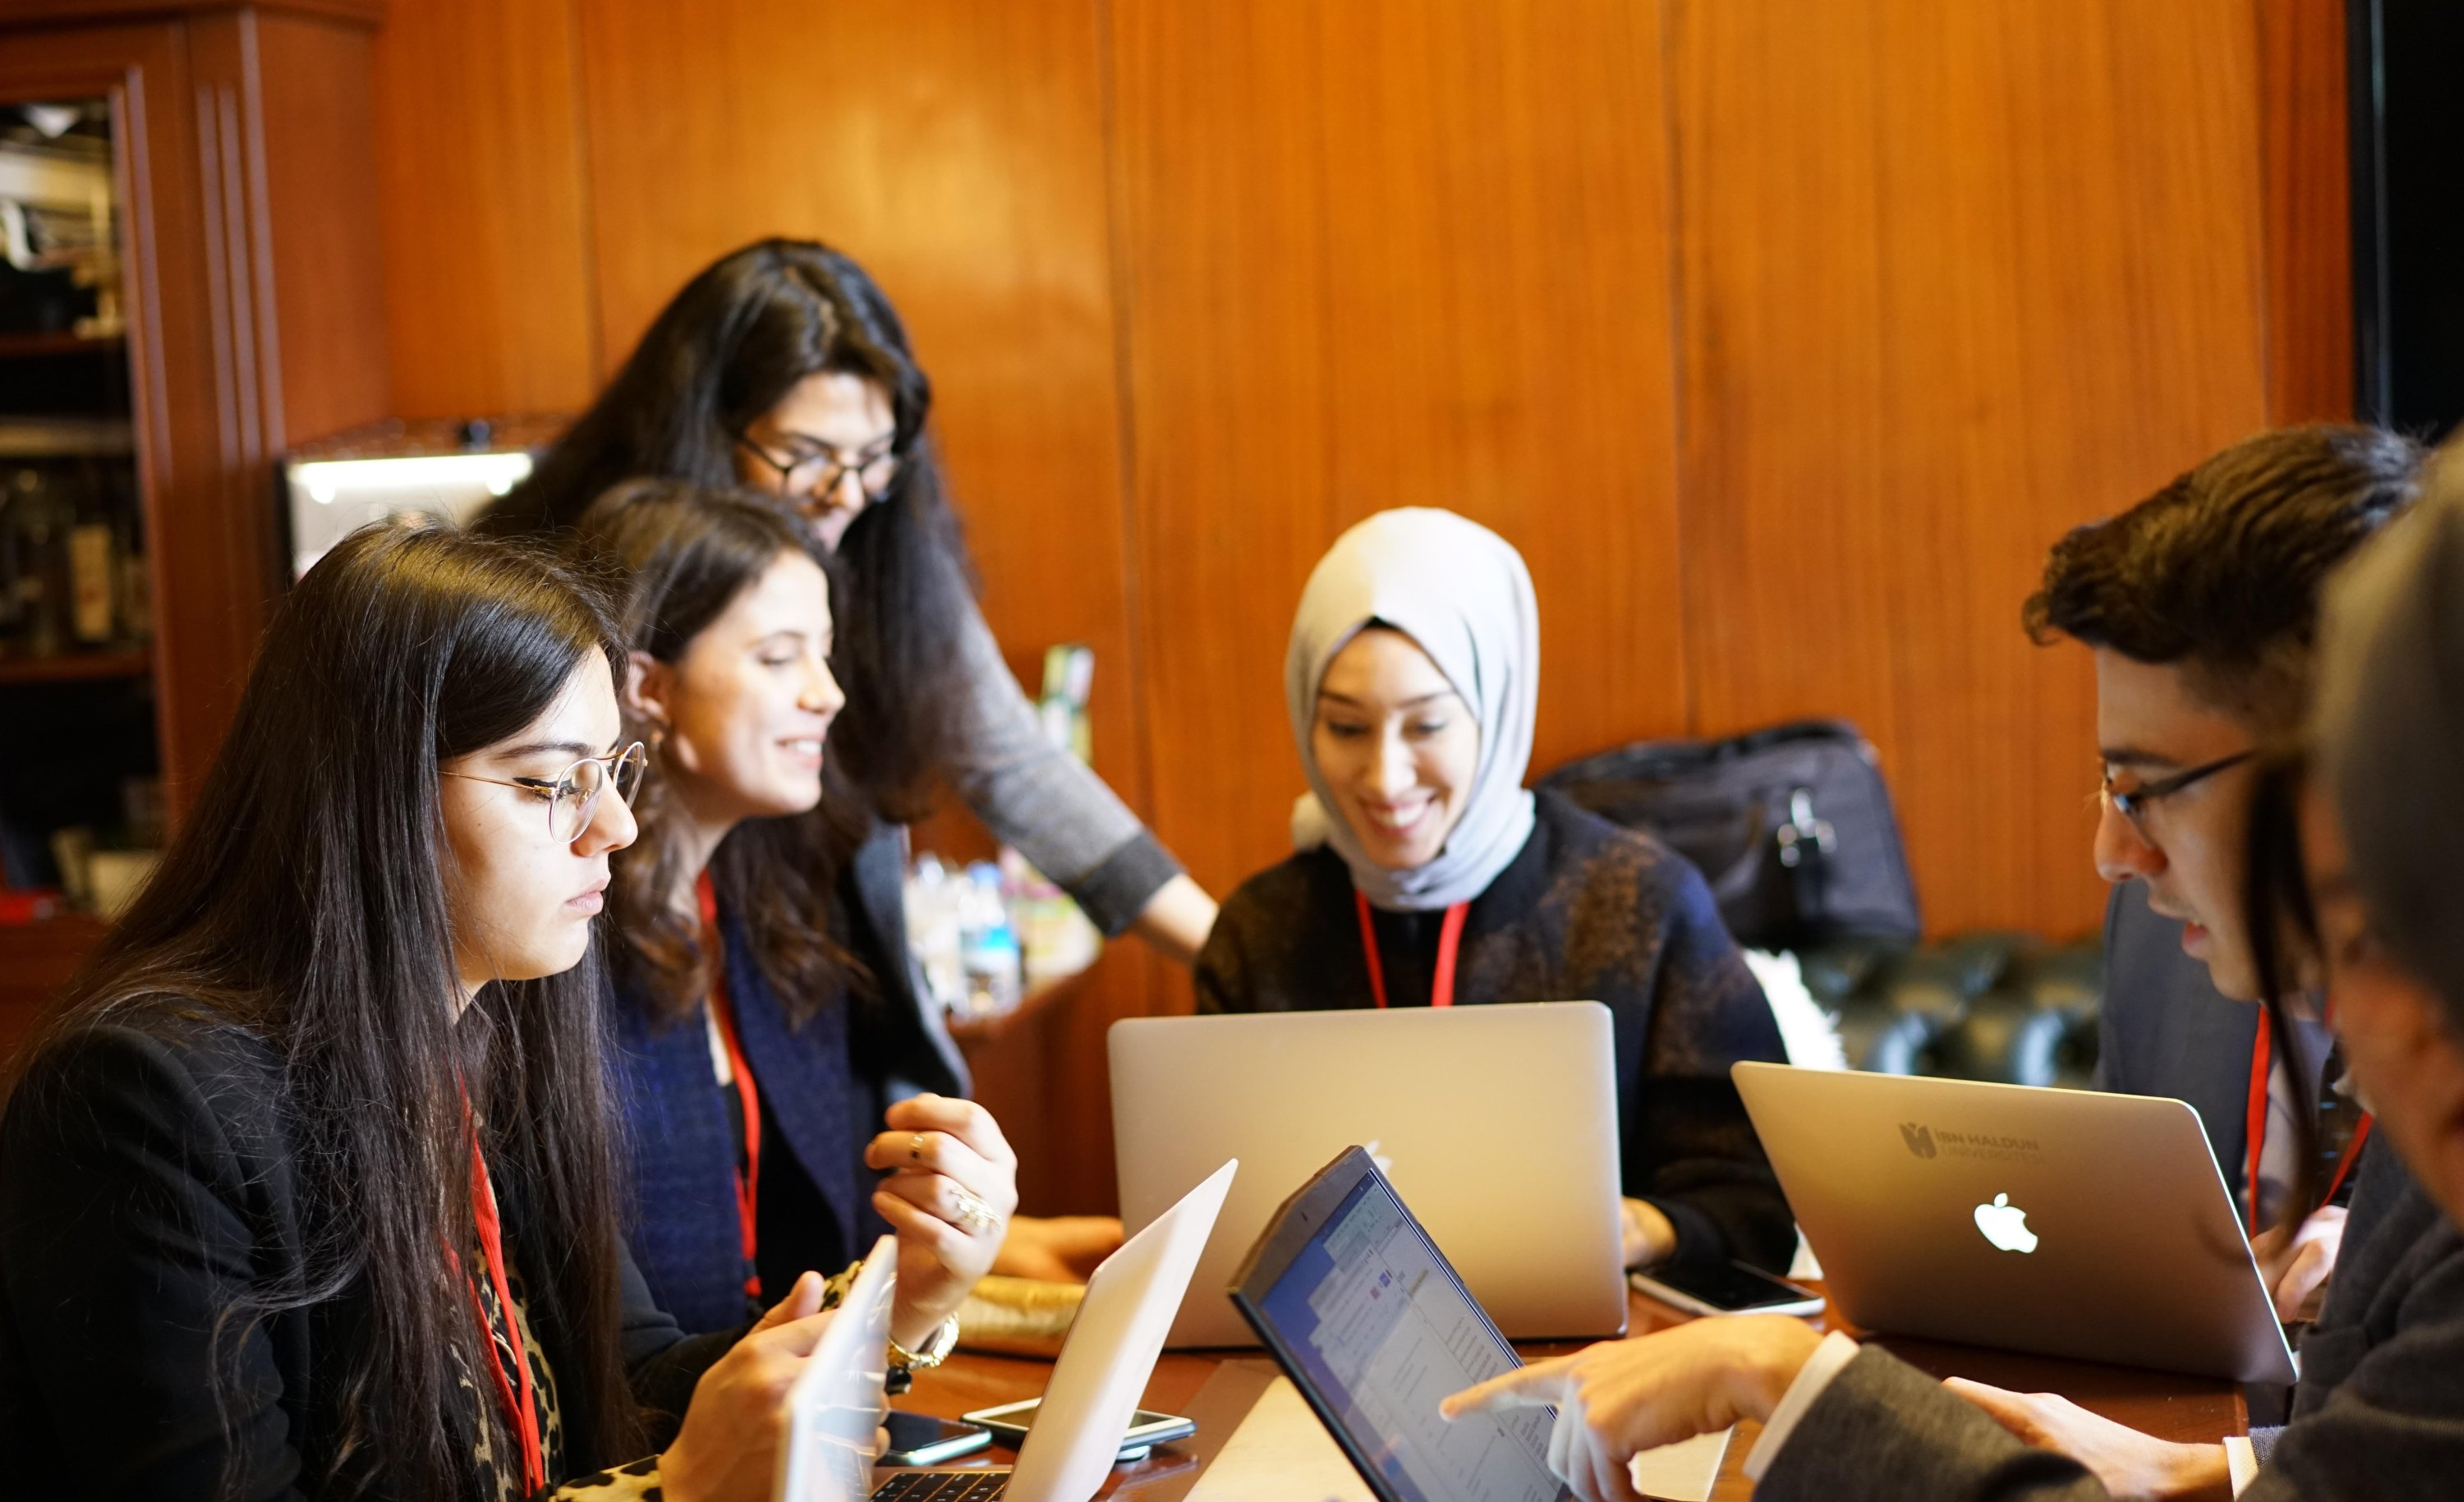 Justice and Development Party (AK Party) Istanbul Deputy Rümeysa Kadak works with a group of young people for the Policy Analysis Group (PAG) workshop at the Turkish Parliament in February 2020. (Handout Photo)